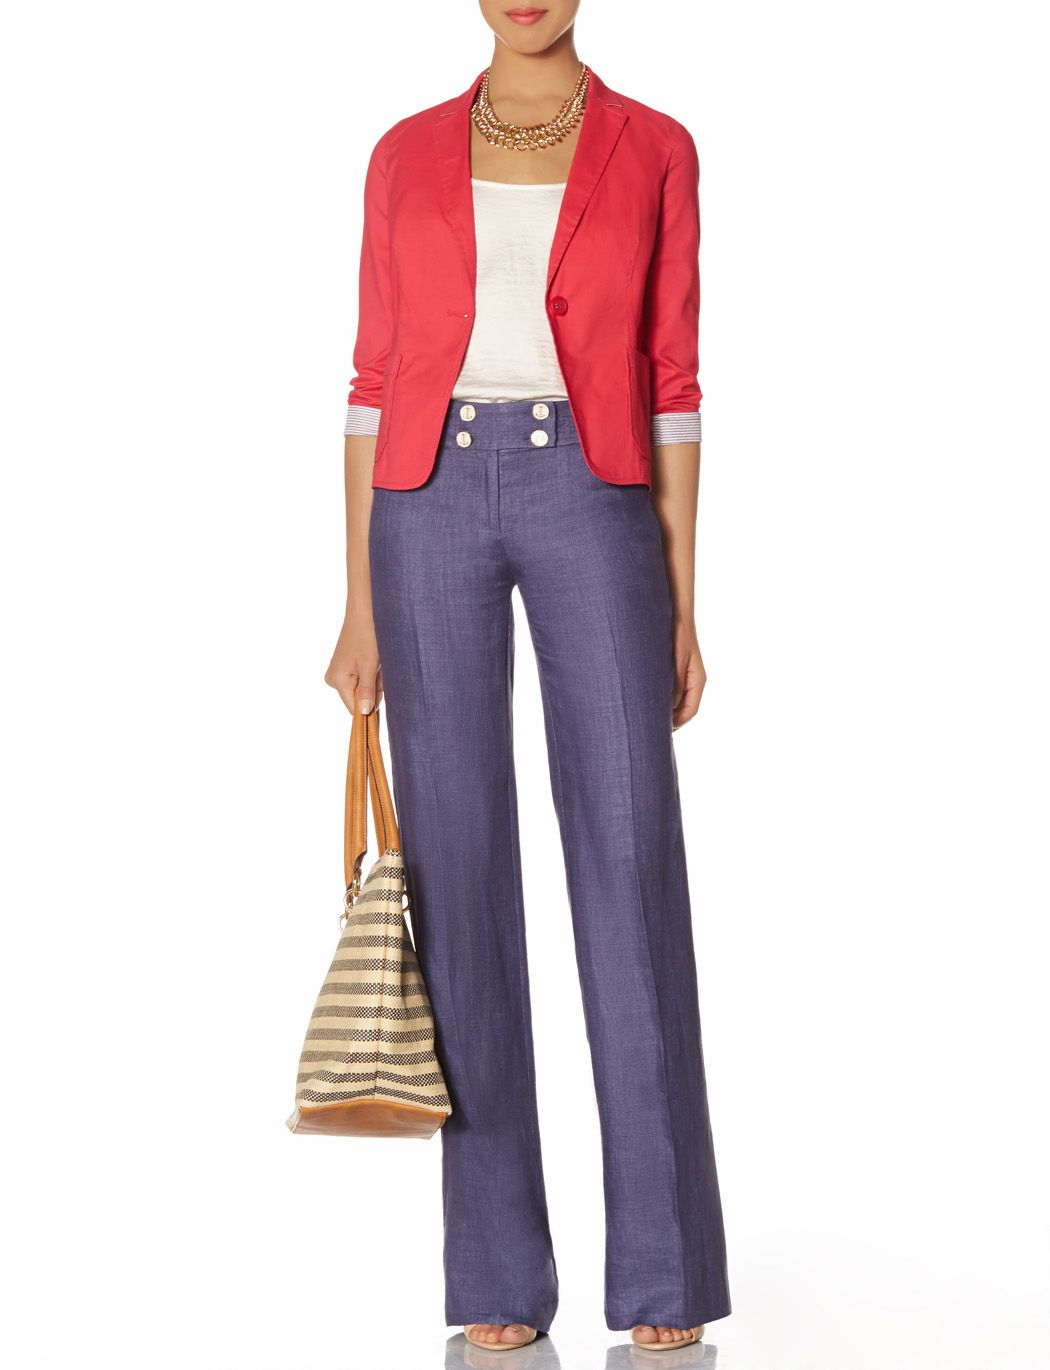 Outback Red® Patch Pocket Blazer   One Button Jacket   THE LIMITED